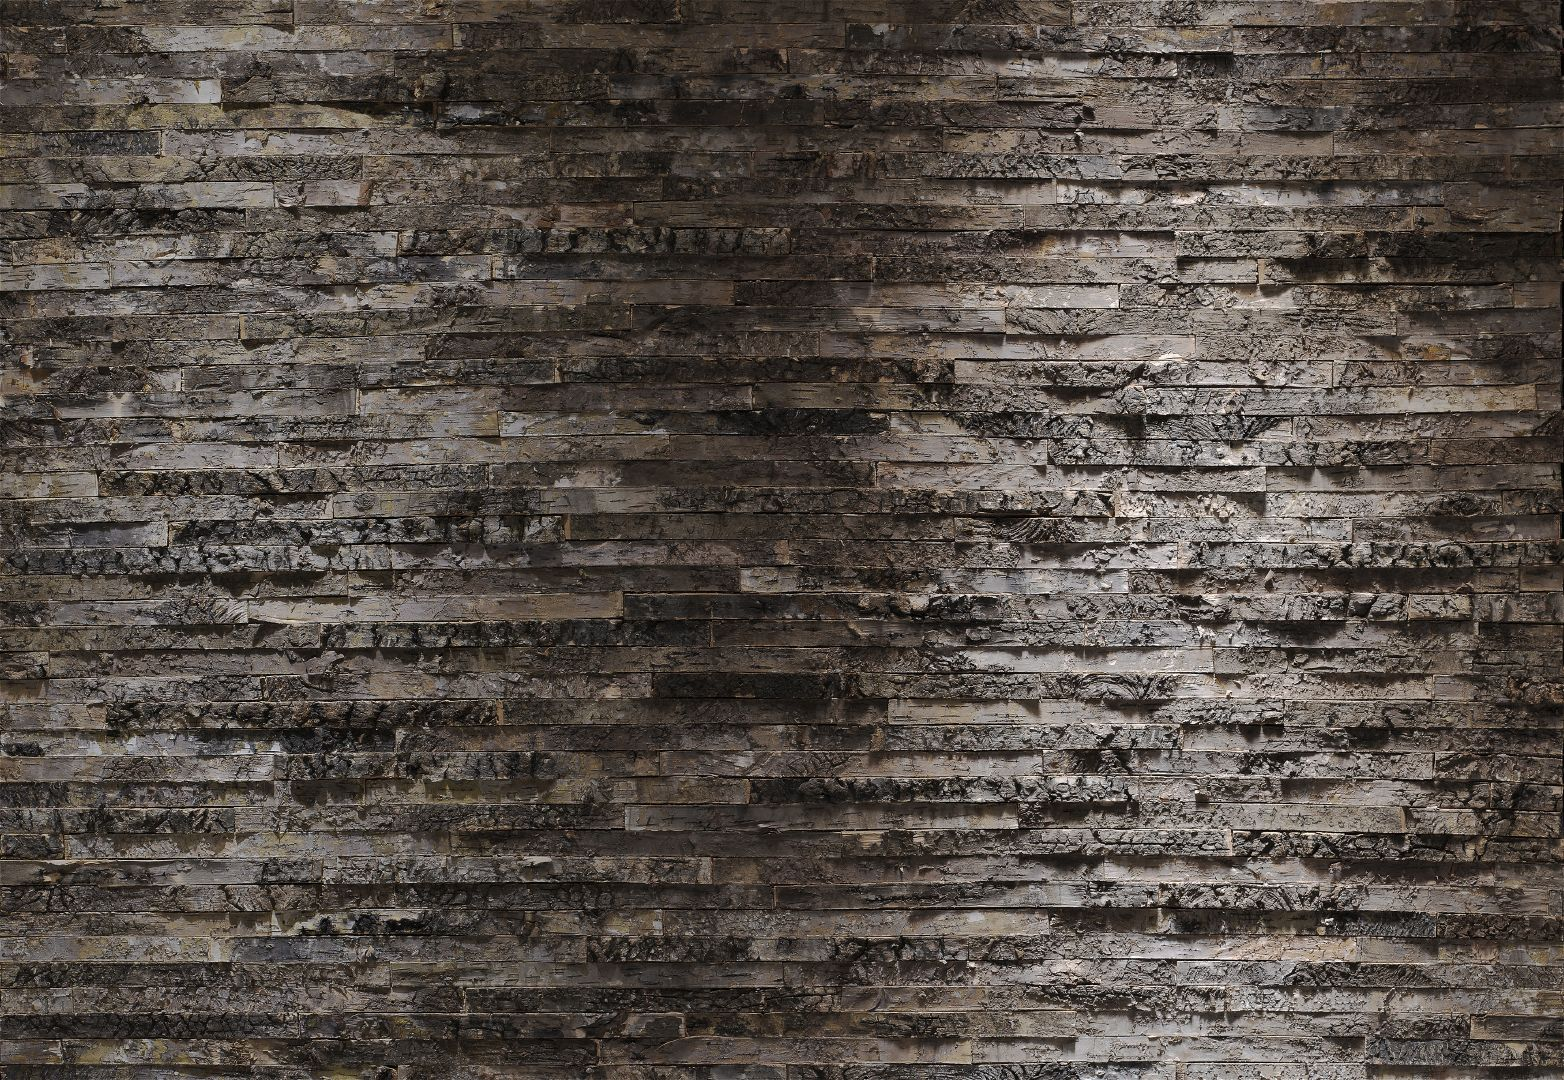 photographic wallpaper stone wall 368 x 254cm from komar 1564x1080